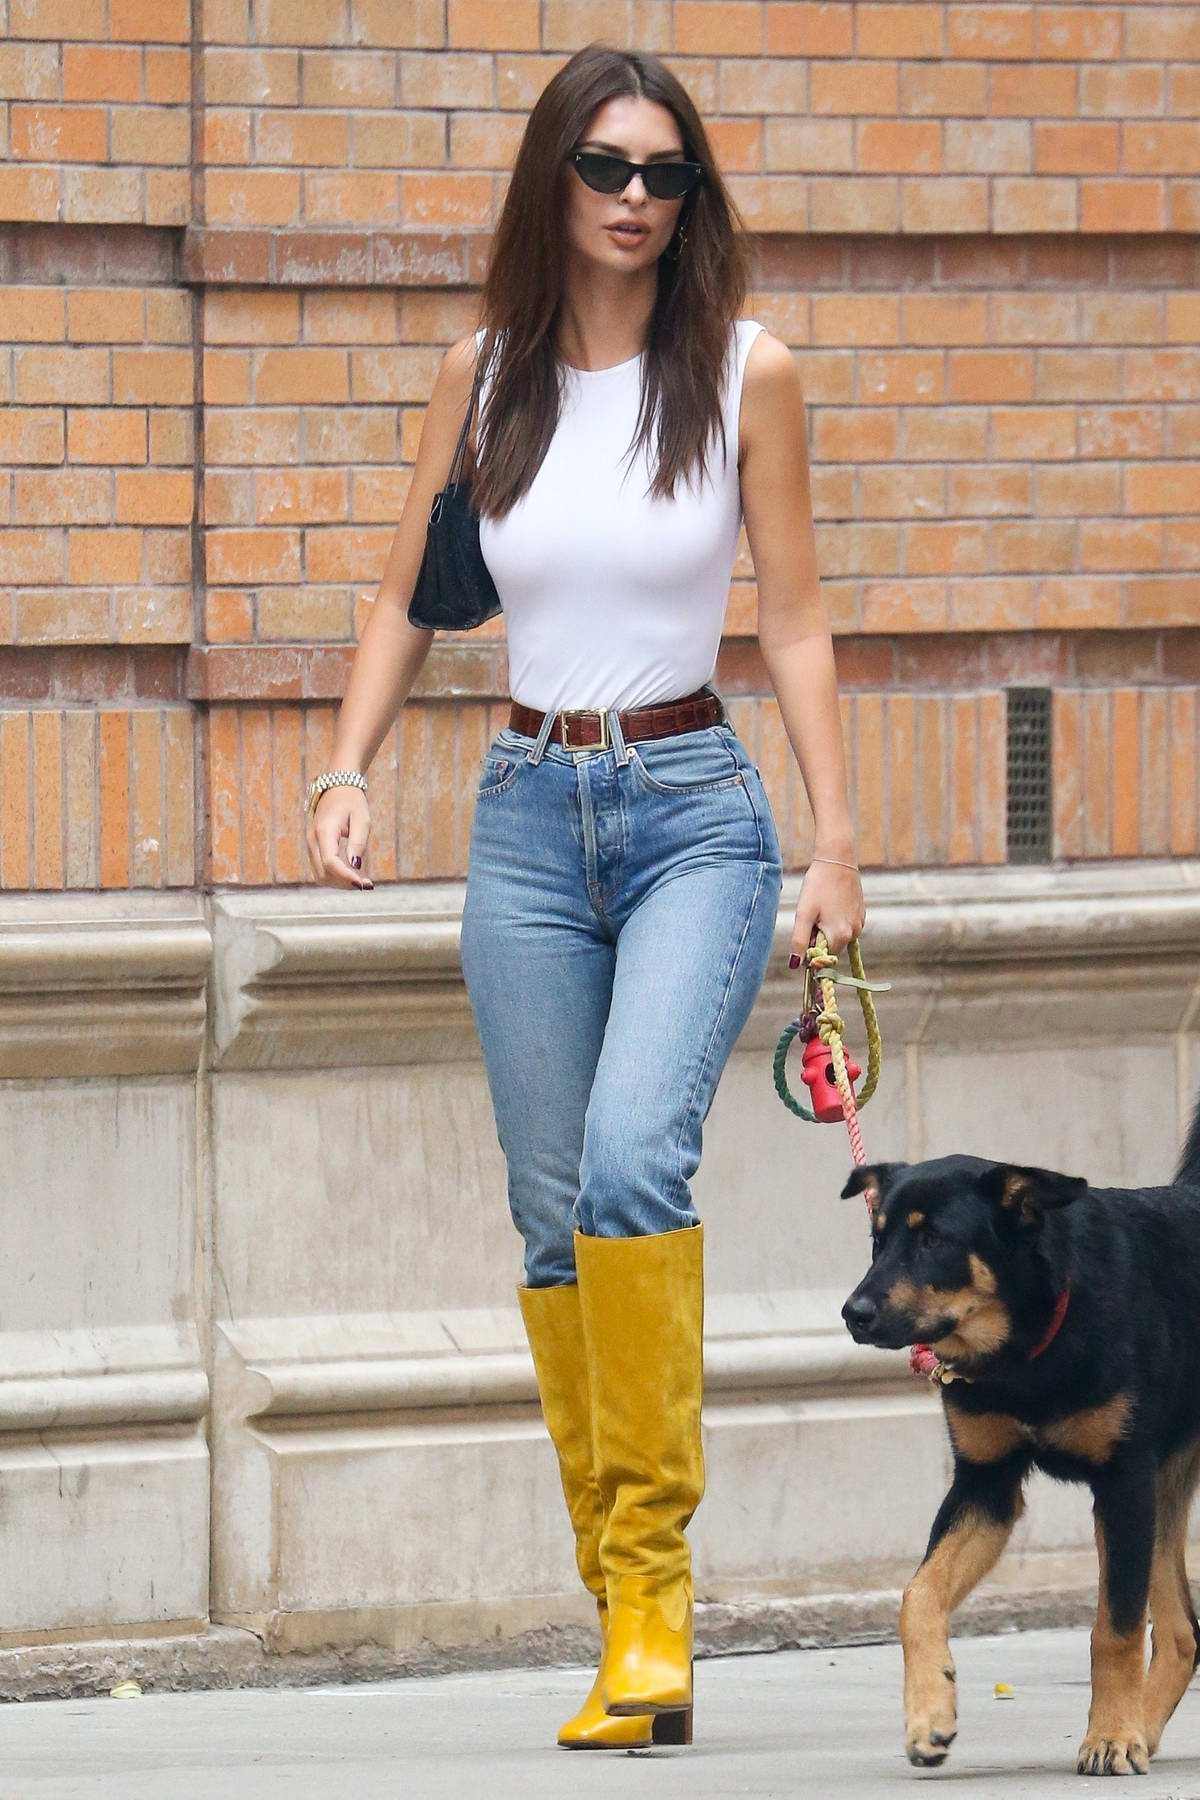 Emily Ratajkowski looks stylish in yellow boots while walking her dog Colombo in New York City